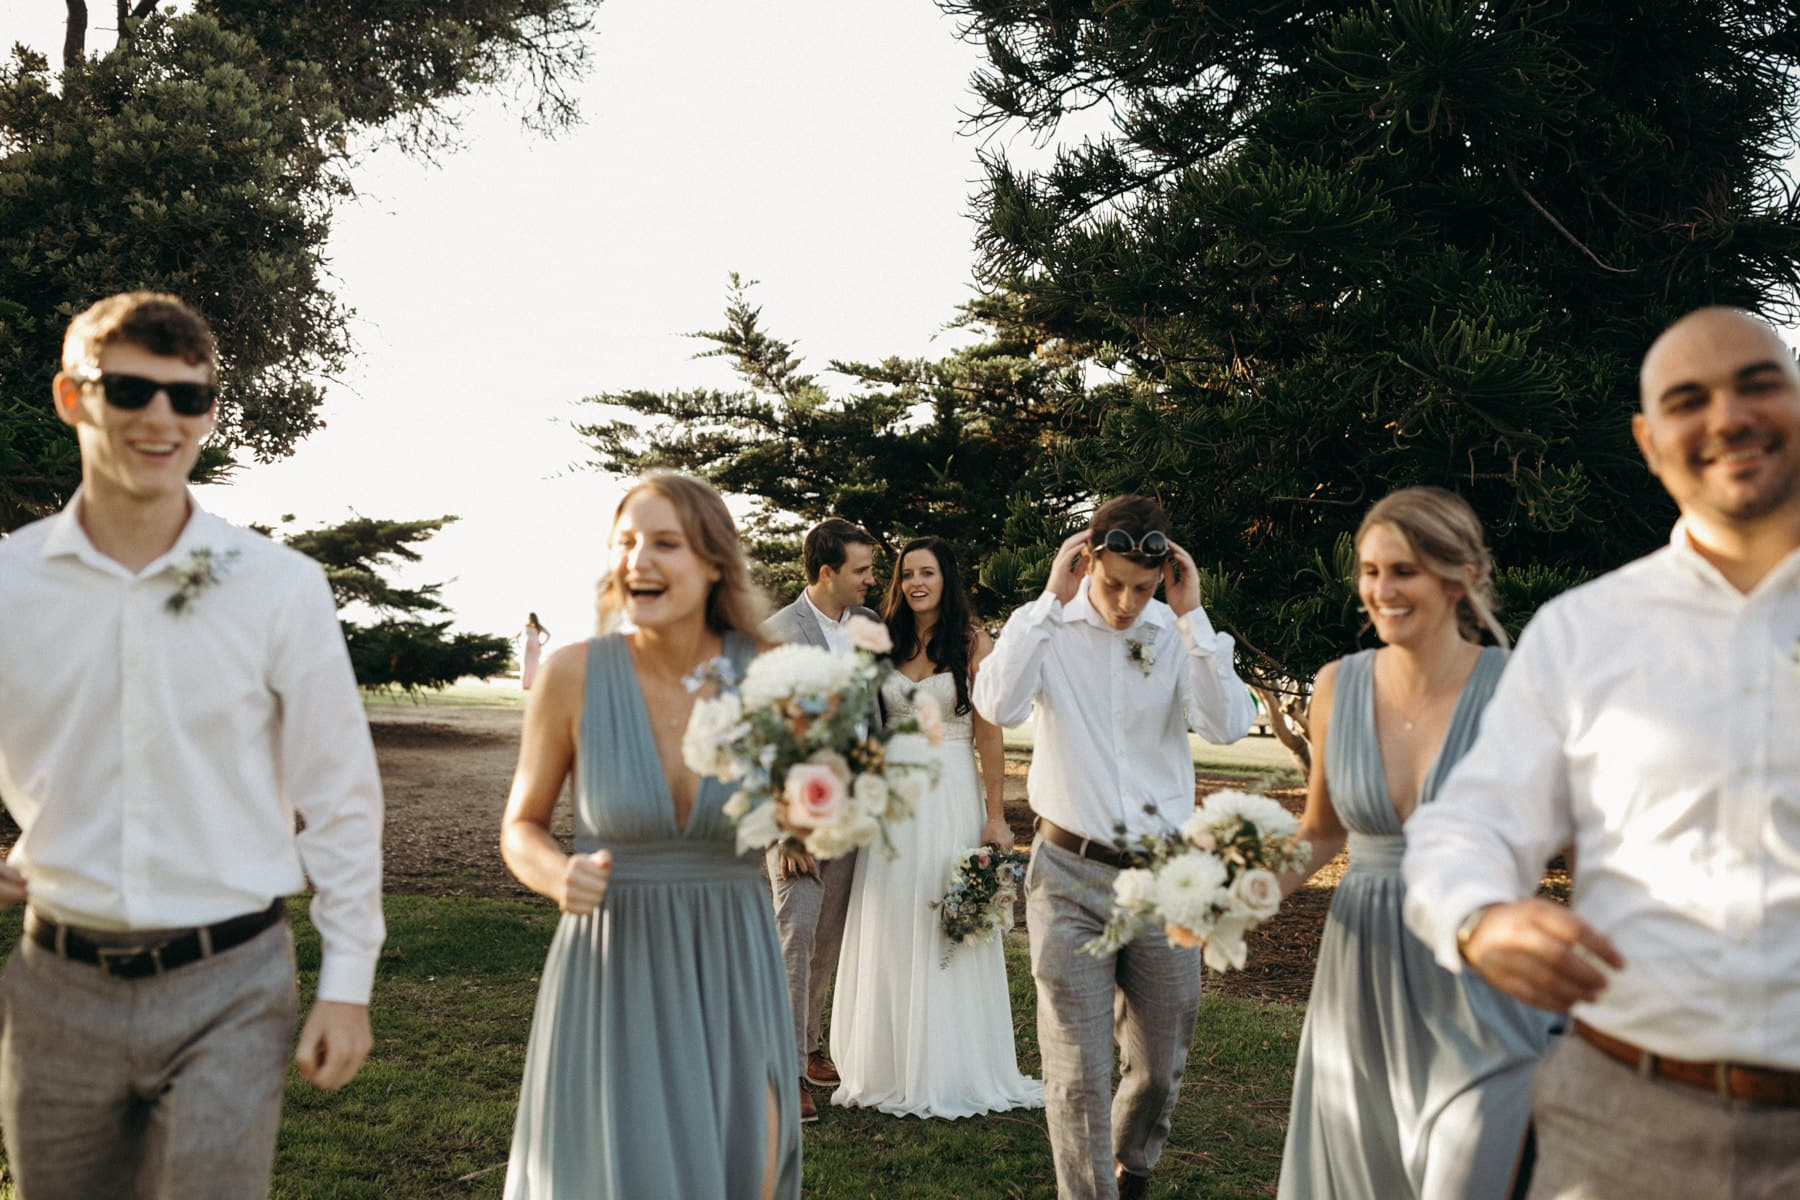 ellen browning scripps park fall wedding